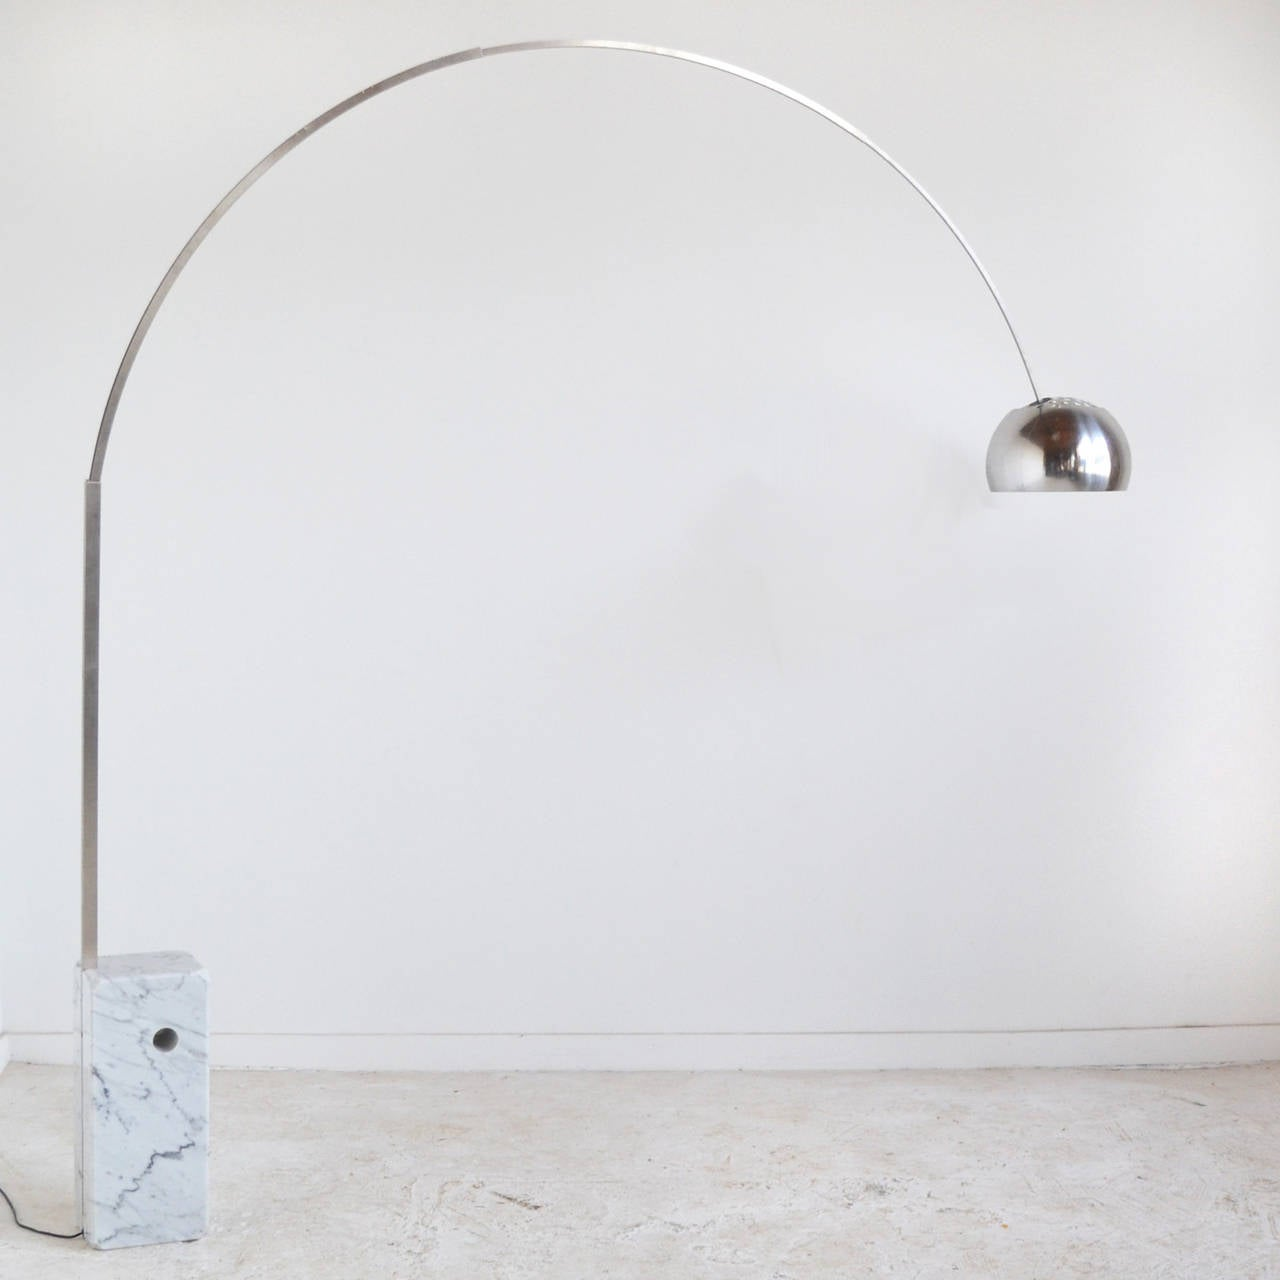 arco lighting. achille castiglioni arco lamp by flos 2 lighting